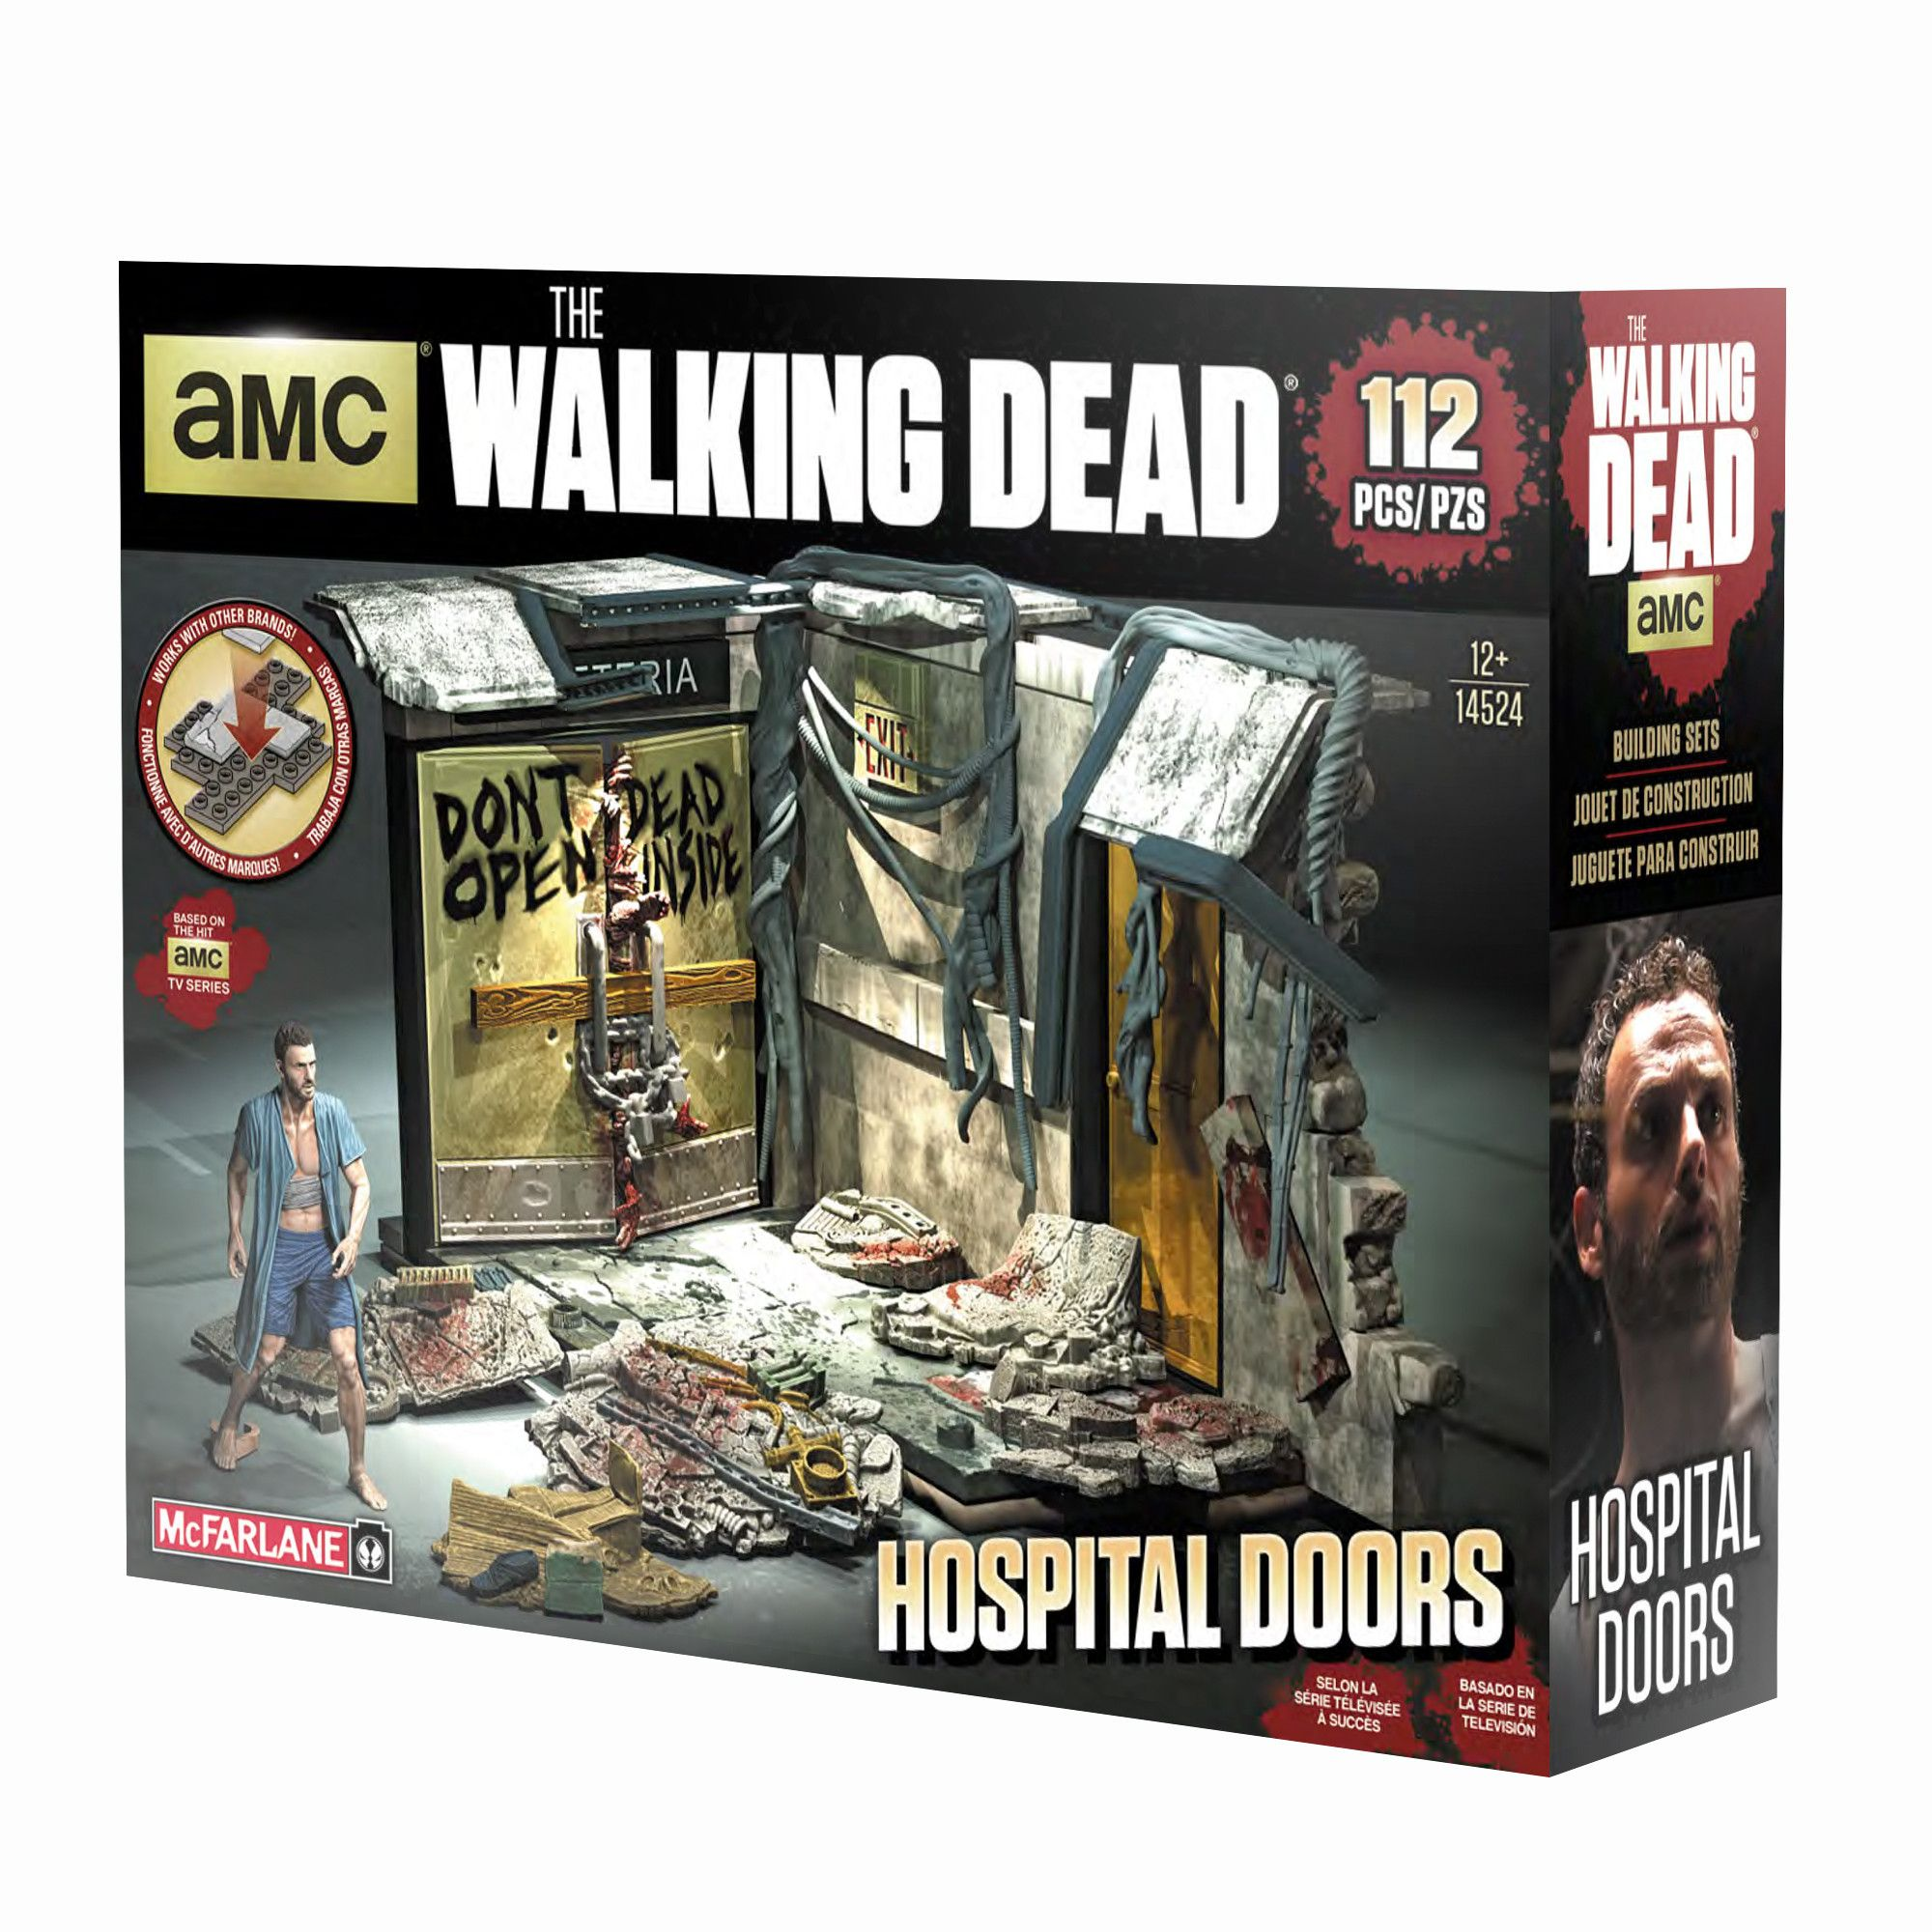 Walking dead lego daryl the walking - Mcfarlane Toys Walking Dead Atlanta Hospital Doors Construction Set